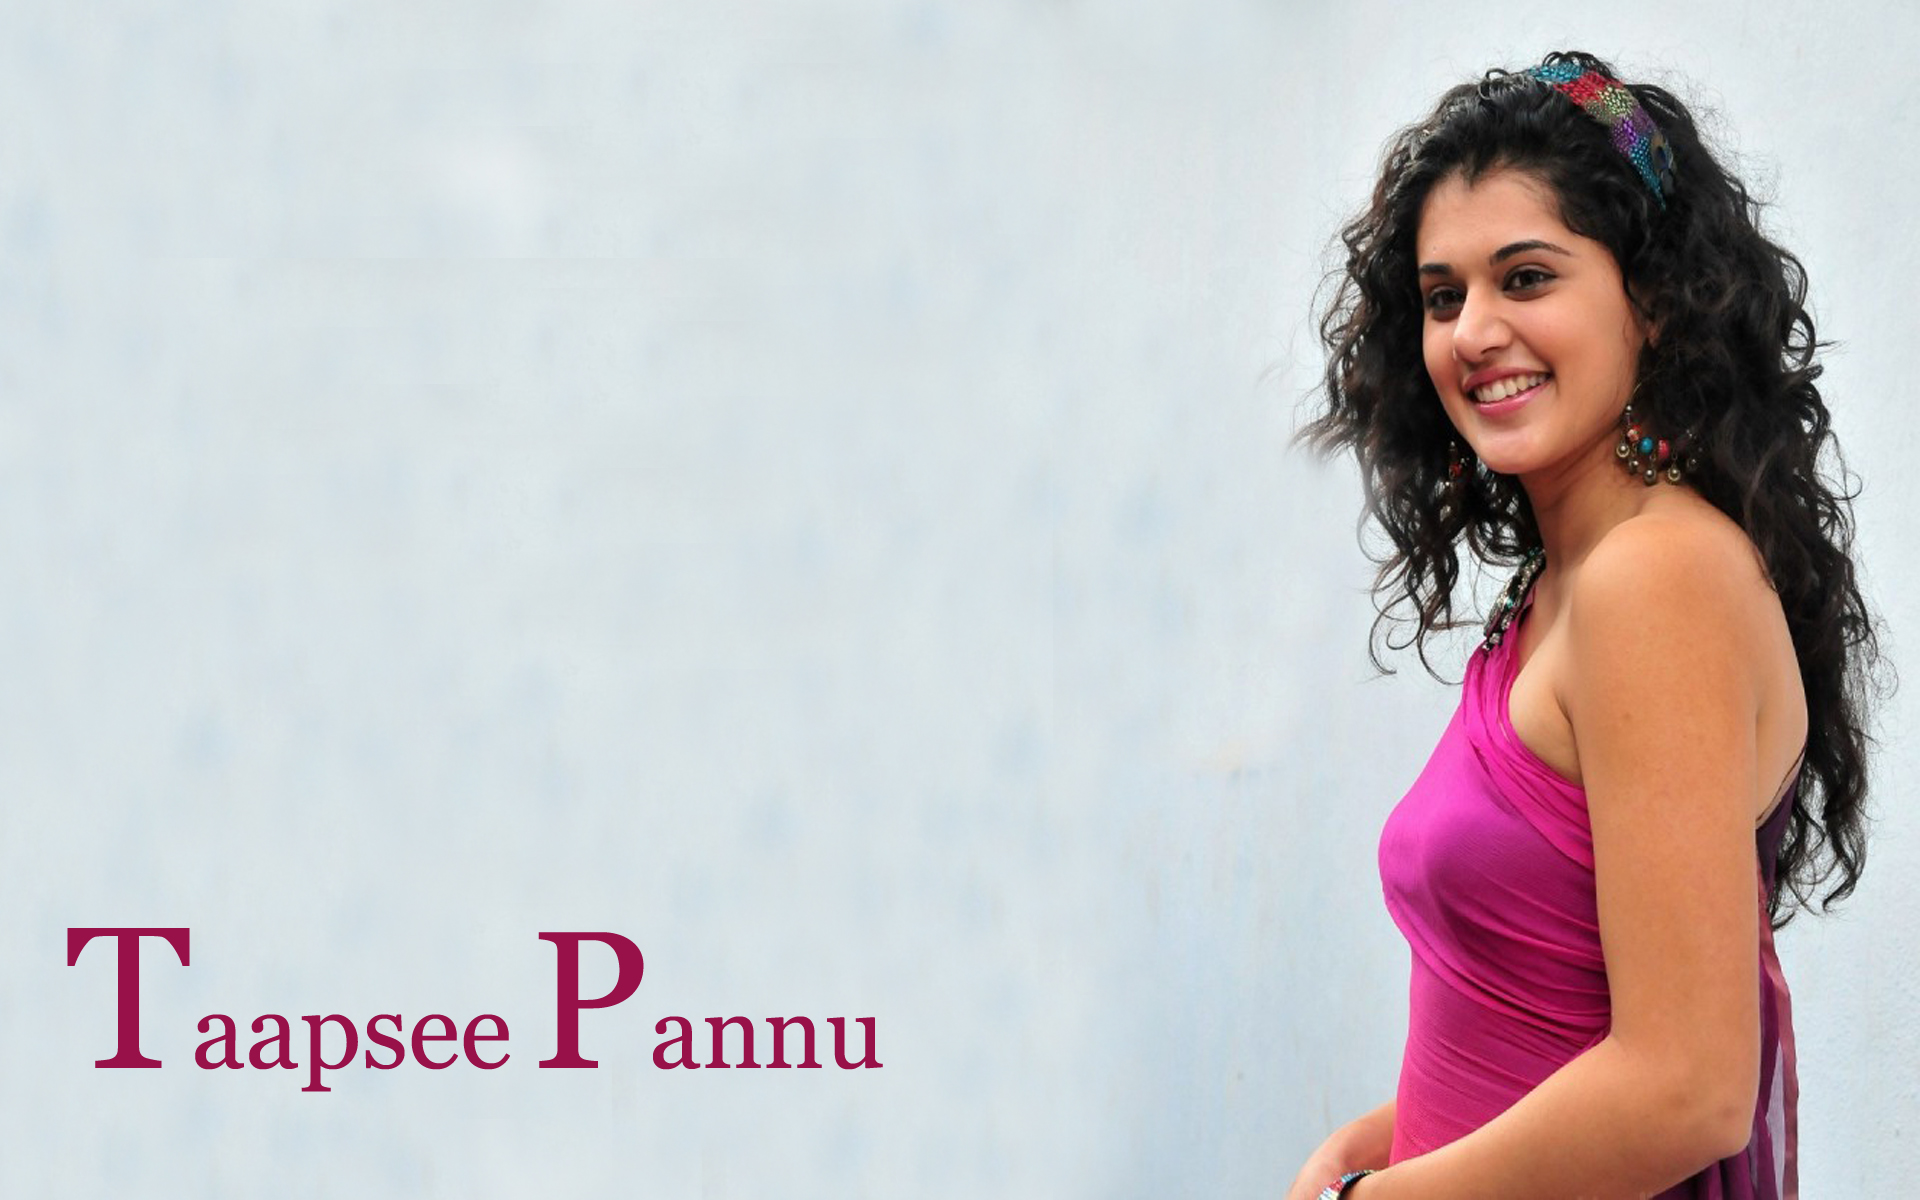 1920x1200 - Tapsee pannu Wallpapers 17